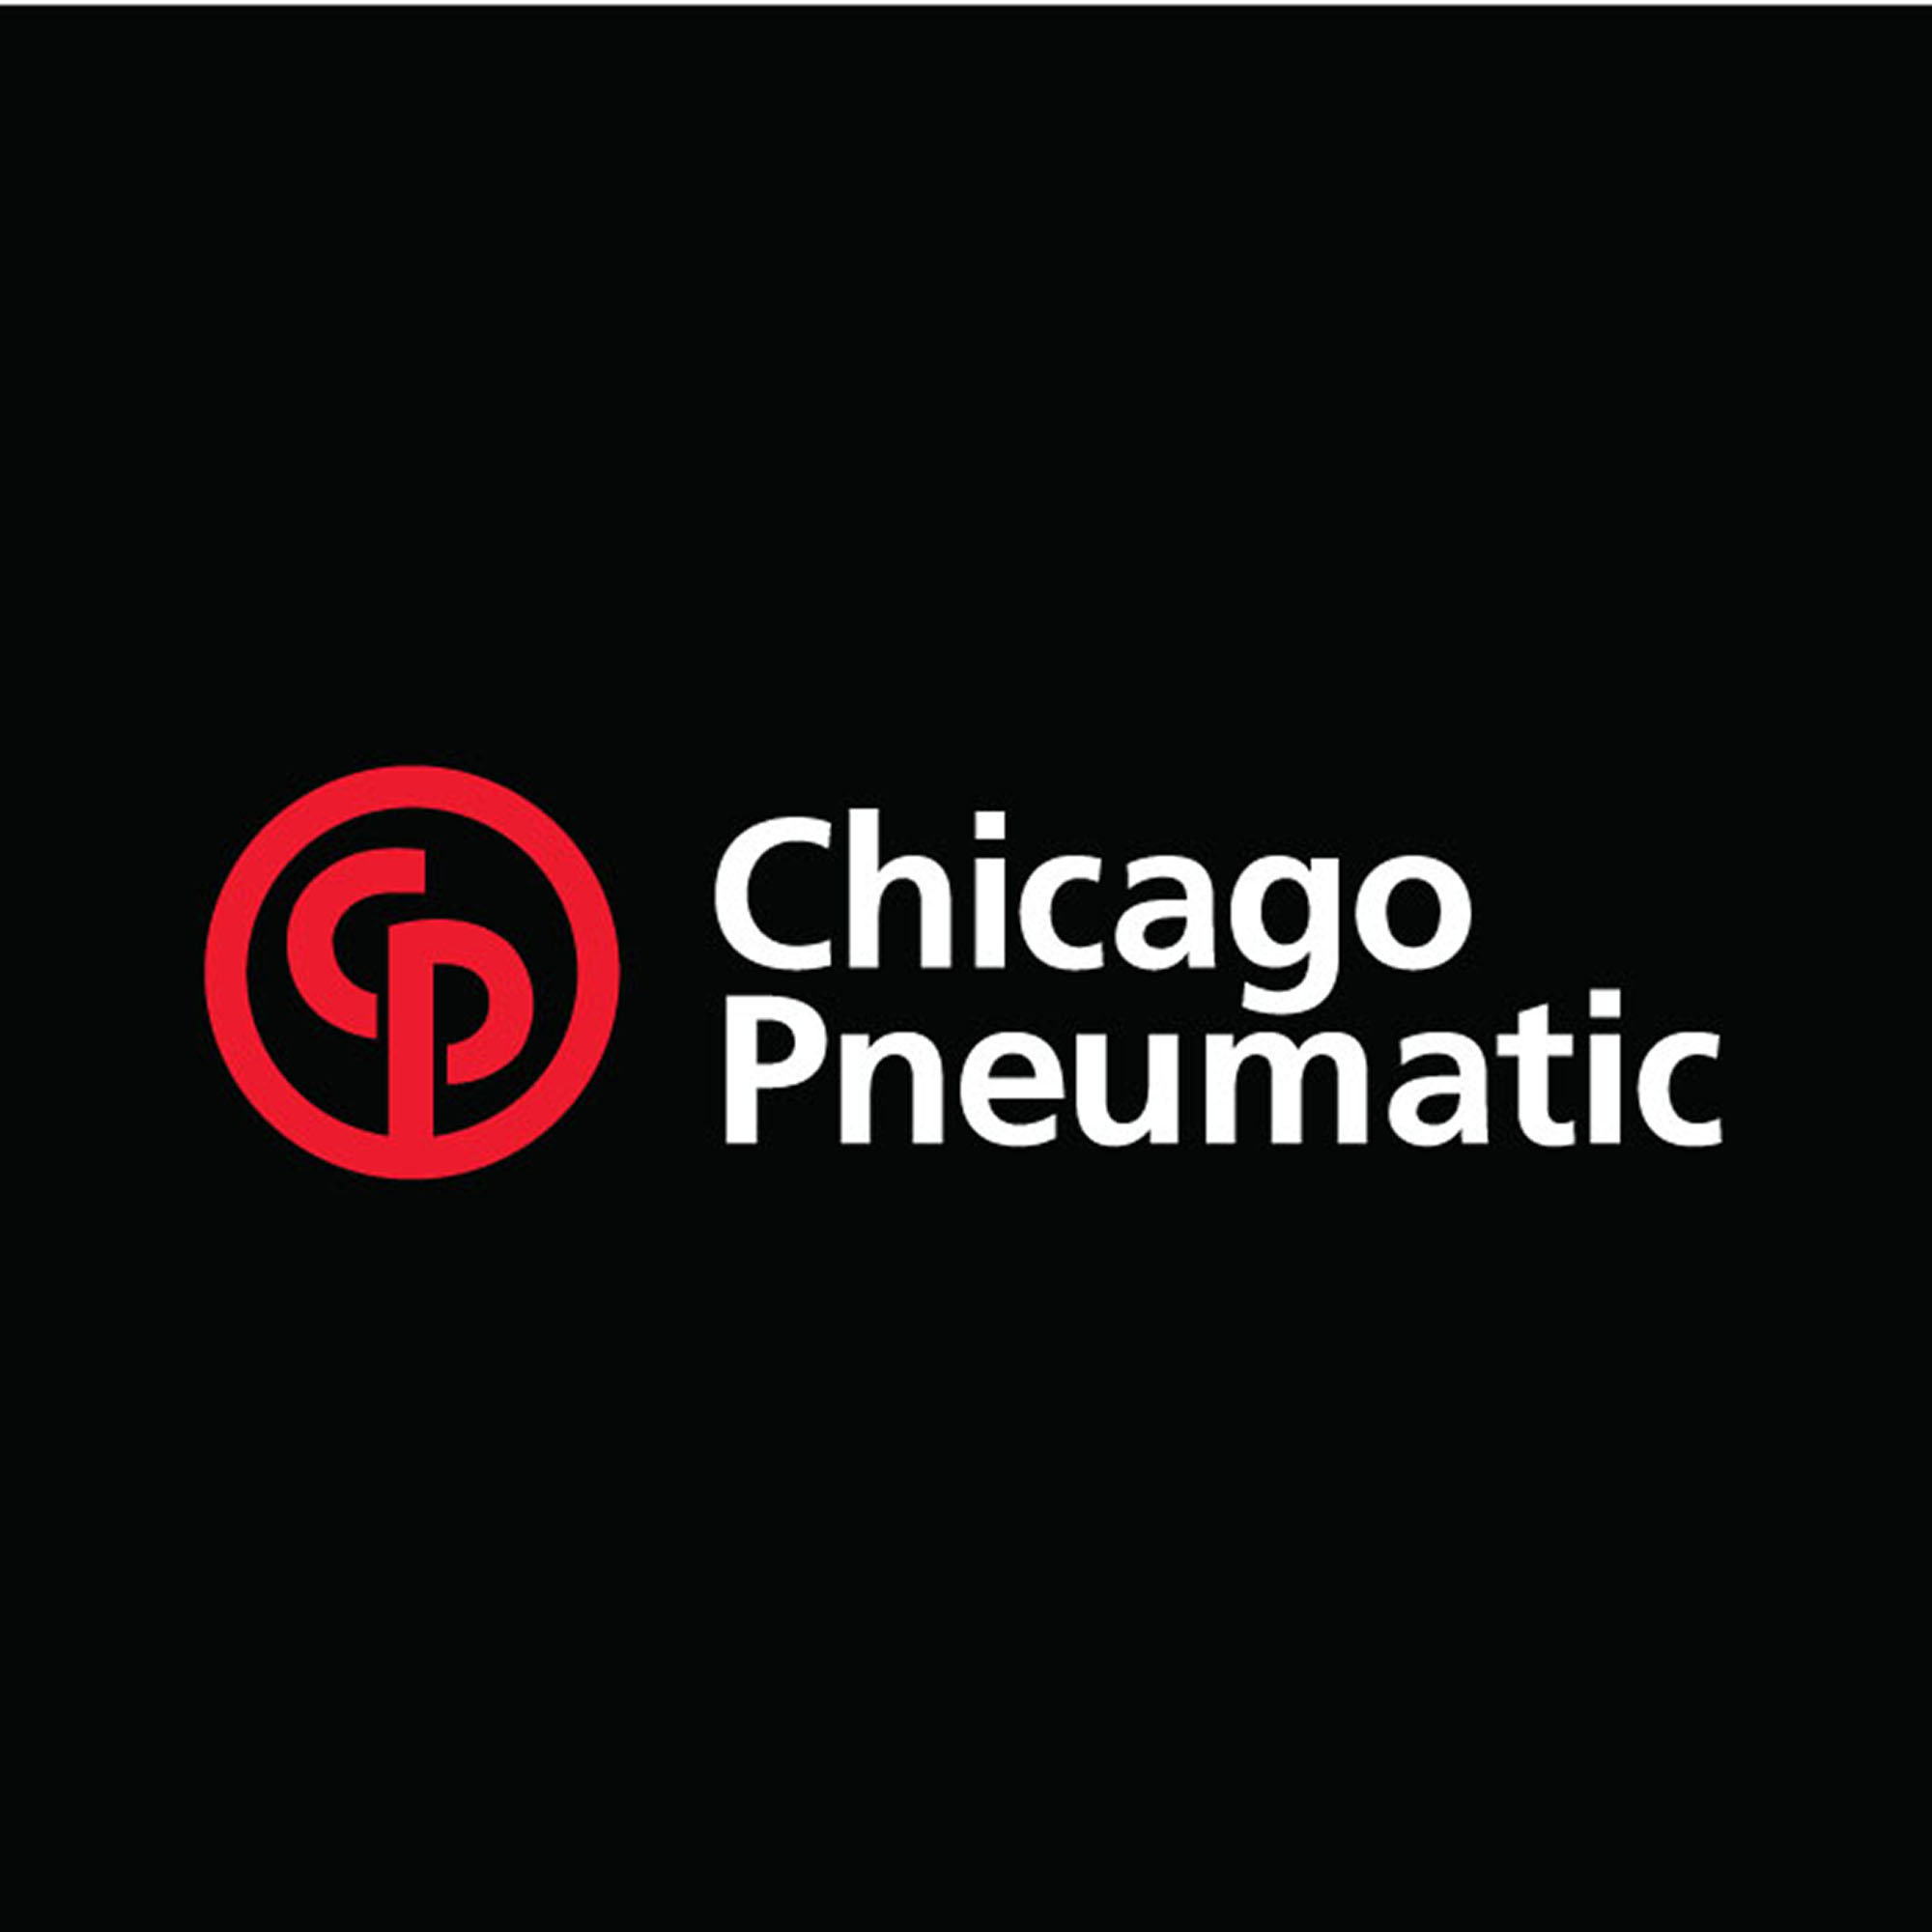 Laser cut Chicago Pneumatic decal in white and red color. Often used when branding cars, front desks and other areas where your logo shall be seen.